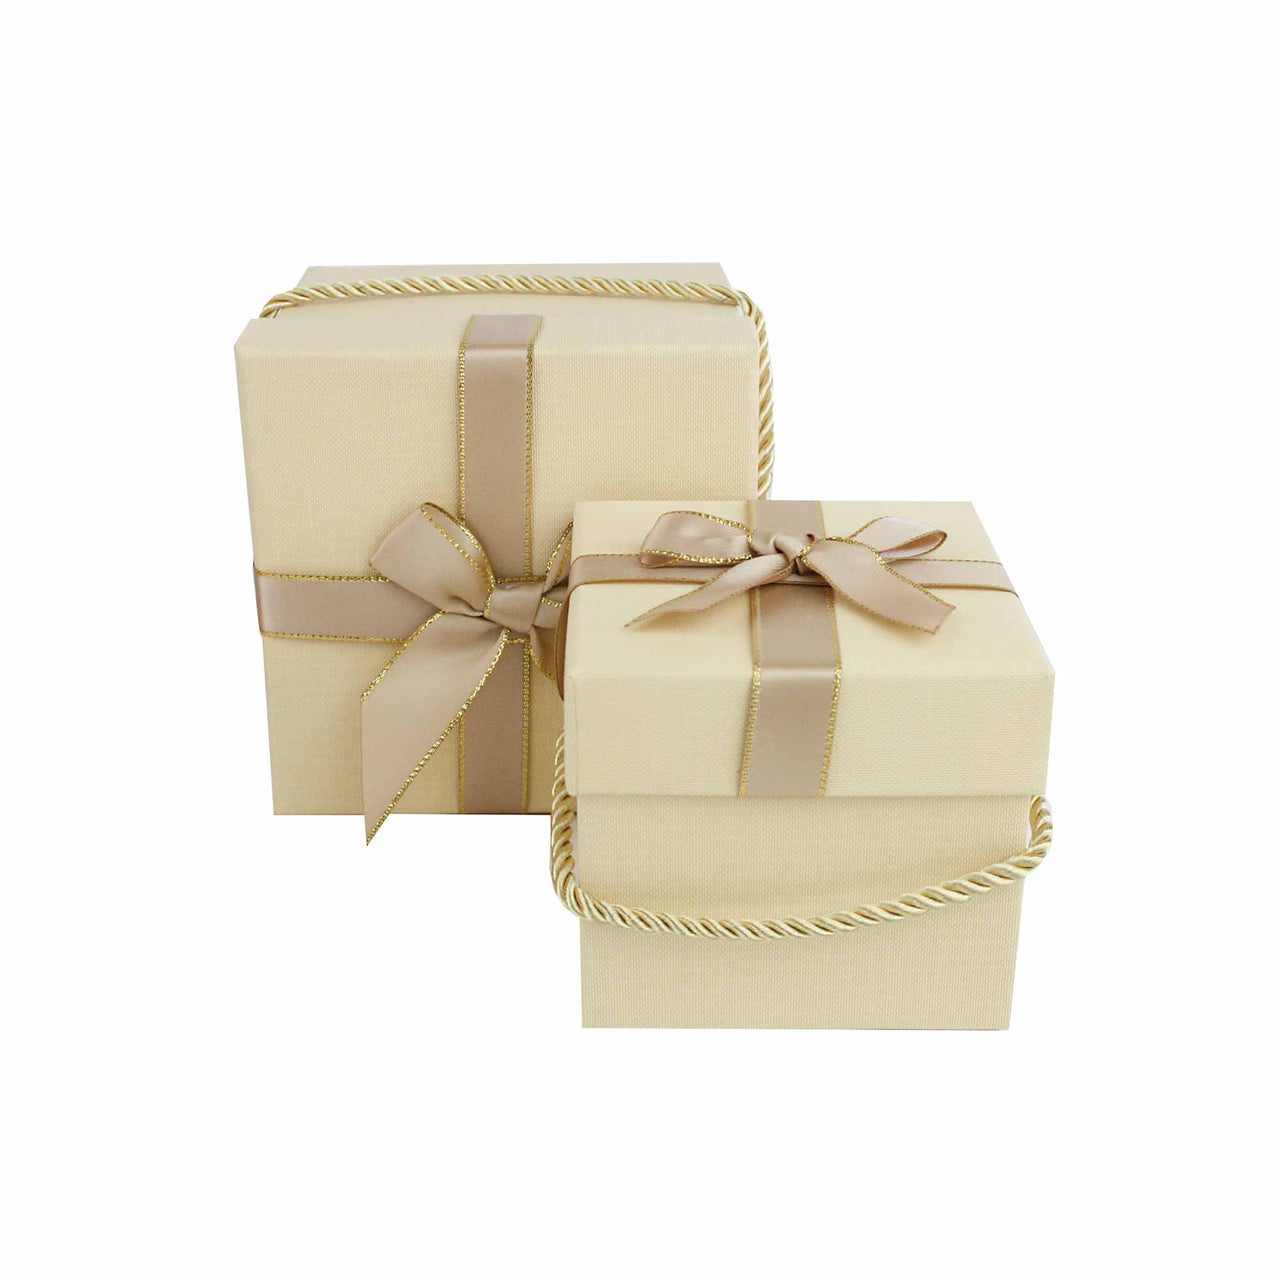 Beige Square Gift Box - Set of 2 - EMARTBUY